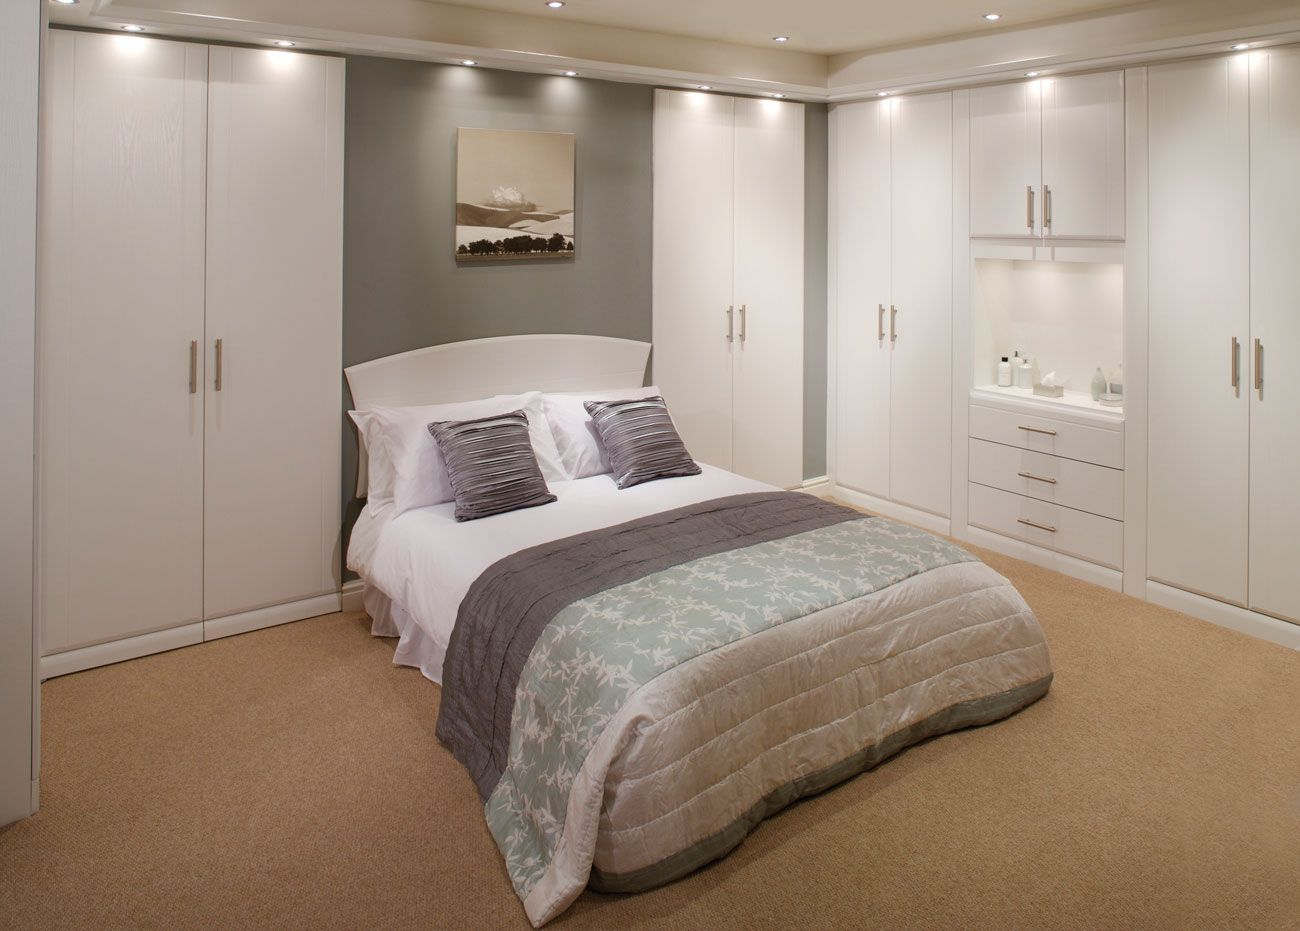 Betta Living Fitted Bedroom Furniture Ideas Beautiful Bedroom Built In  Cupboards